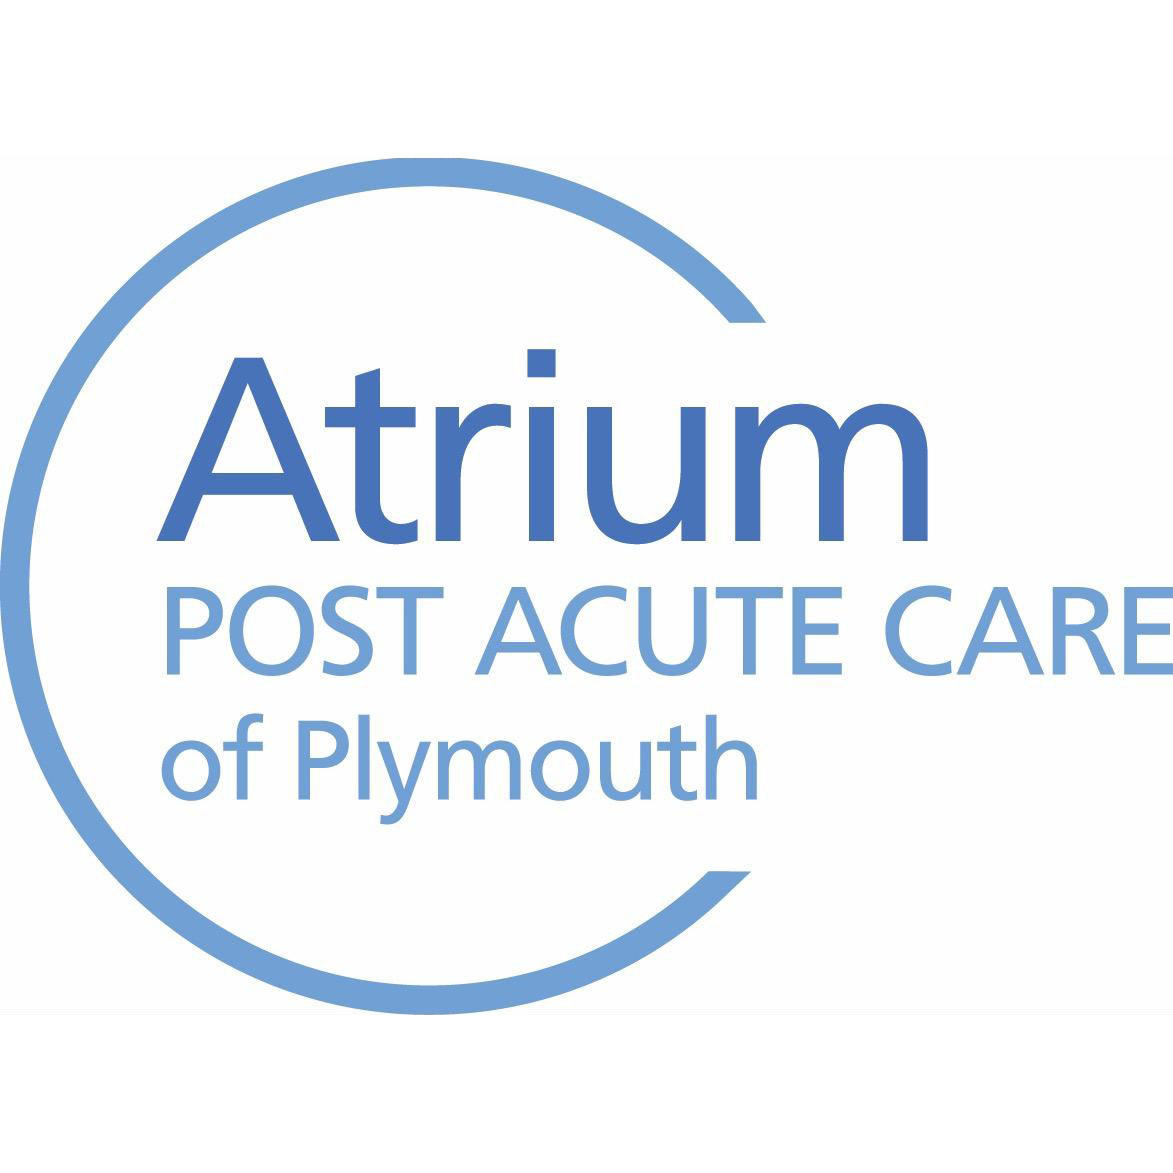 Atrium Post Acute Care of Plymouth - Plymouth, WI - Physical Medicine & Rehab